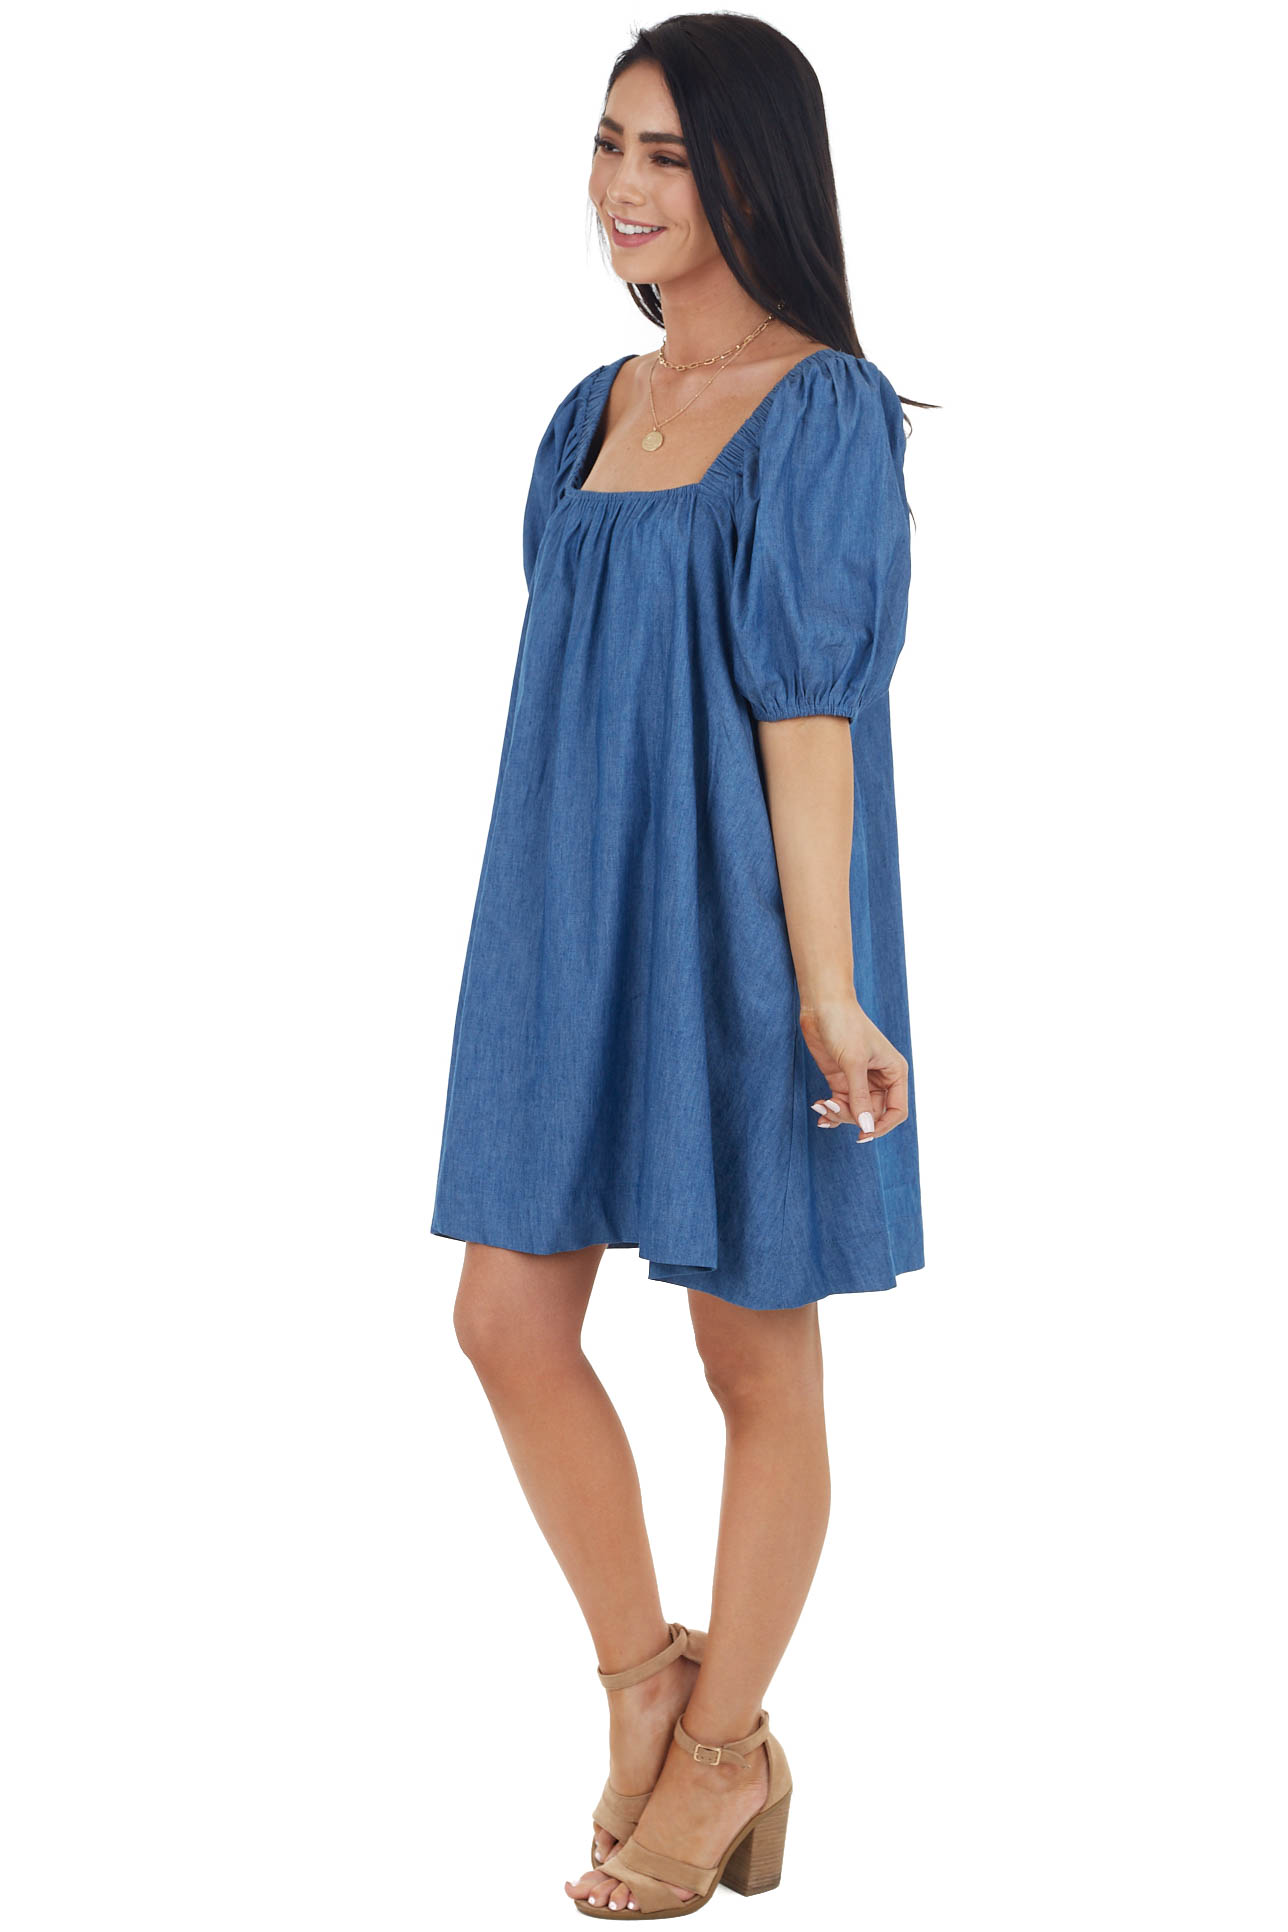 Medium Wash Short Bubble Sleeve Dress with Square Neckline